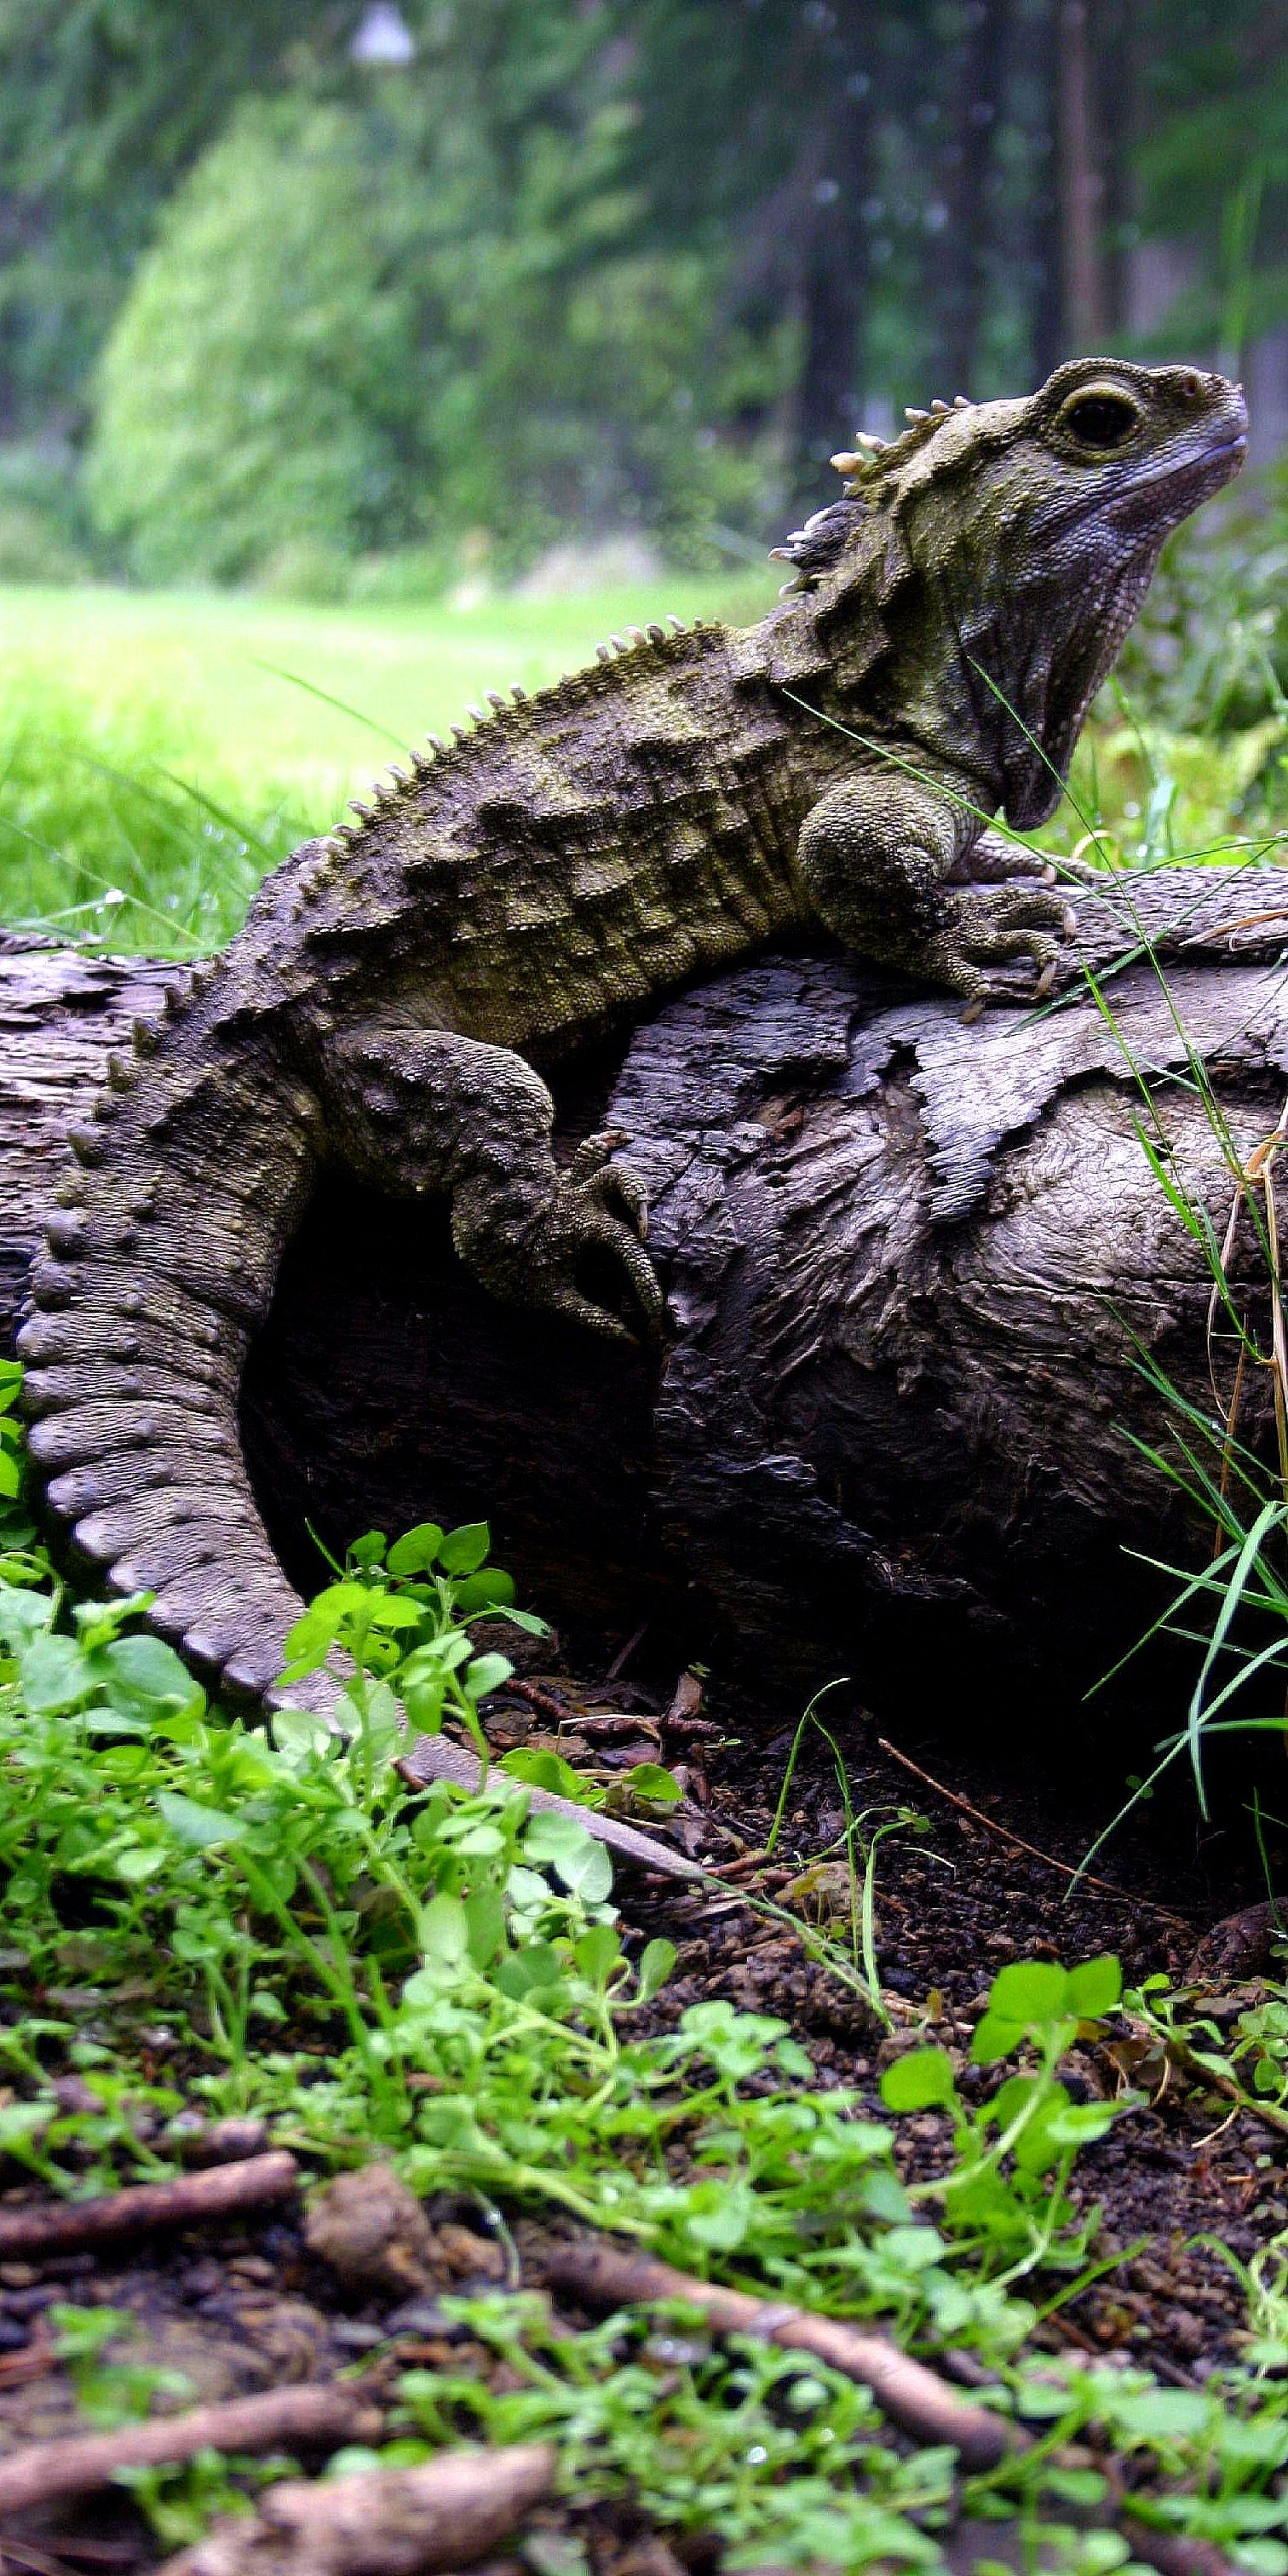 This Is Henry The Oldest Tuatara In NZ Invercargill Tuataarium Average Life Span Of A Over 100 Years